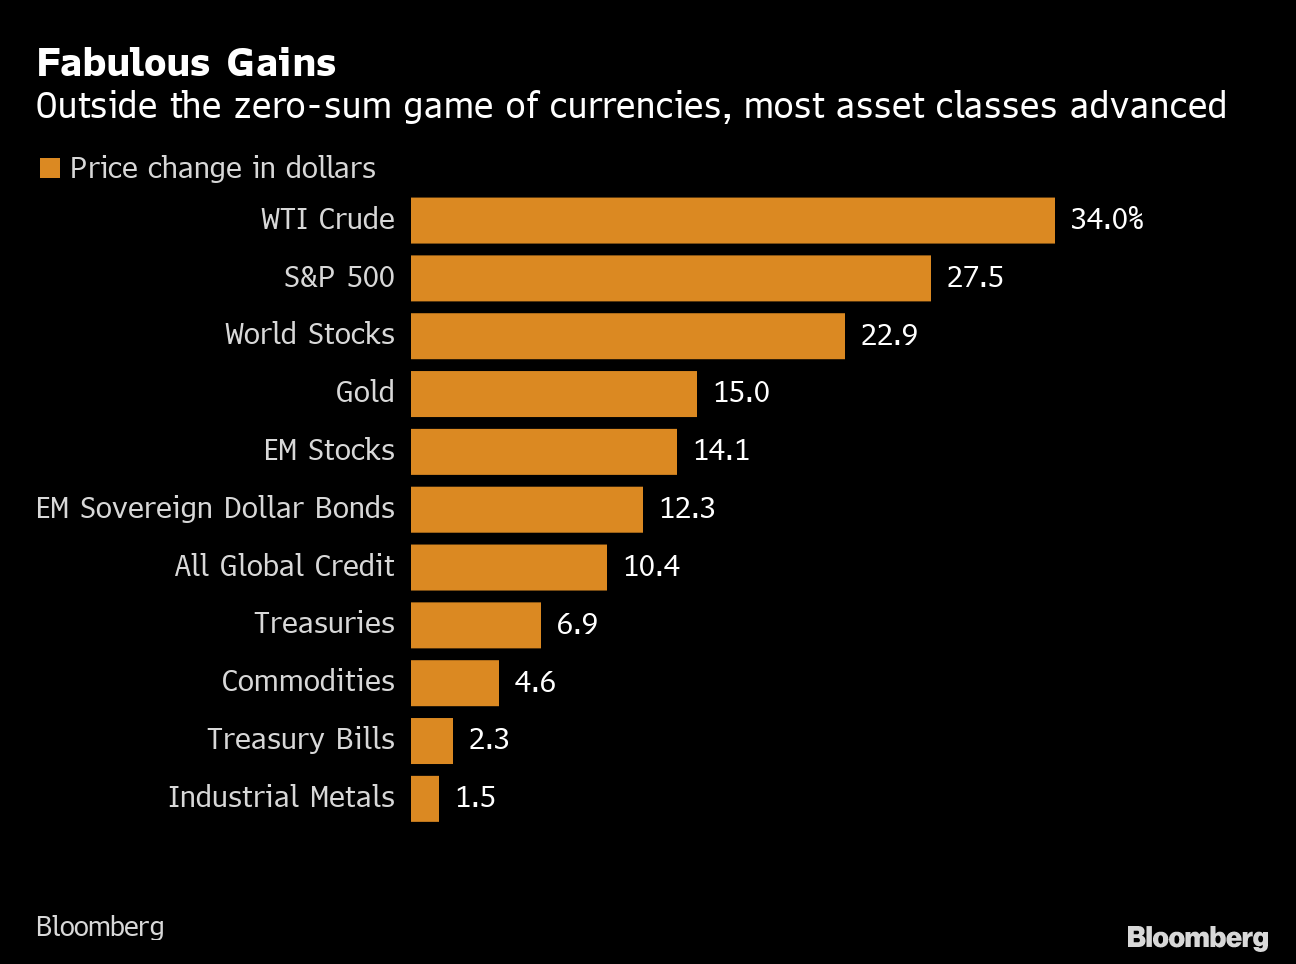 Major asset classes investments for 2021 investing short term when stocks are high